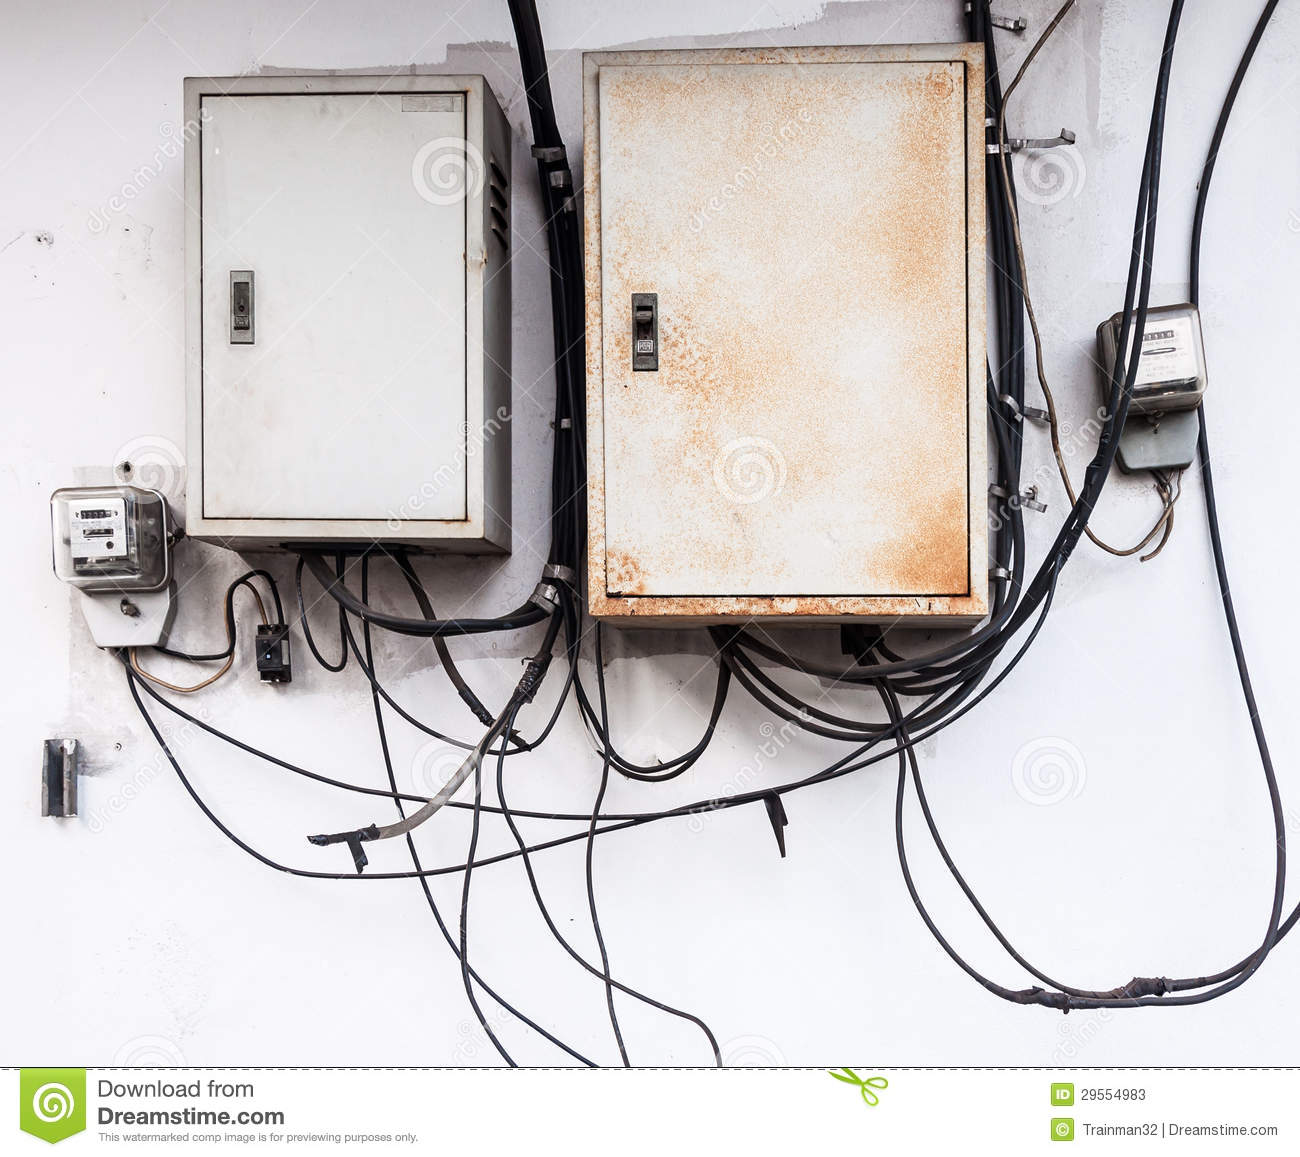 old breaker box stock images download 328 royalty free photos